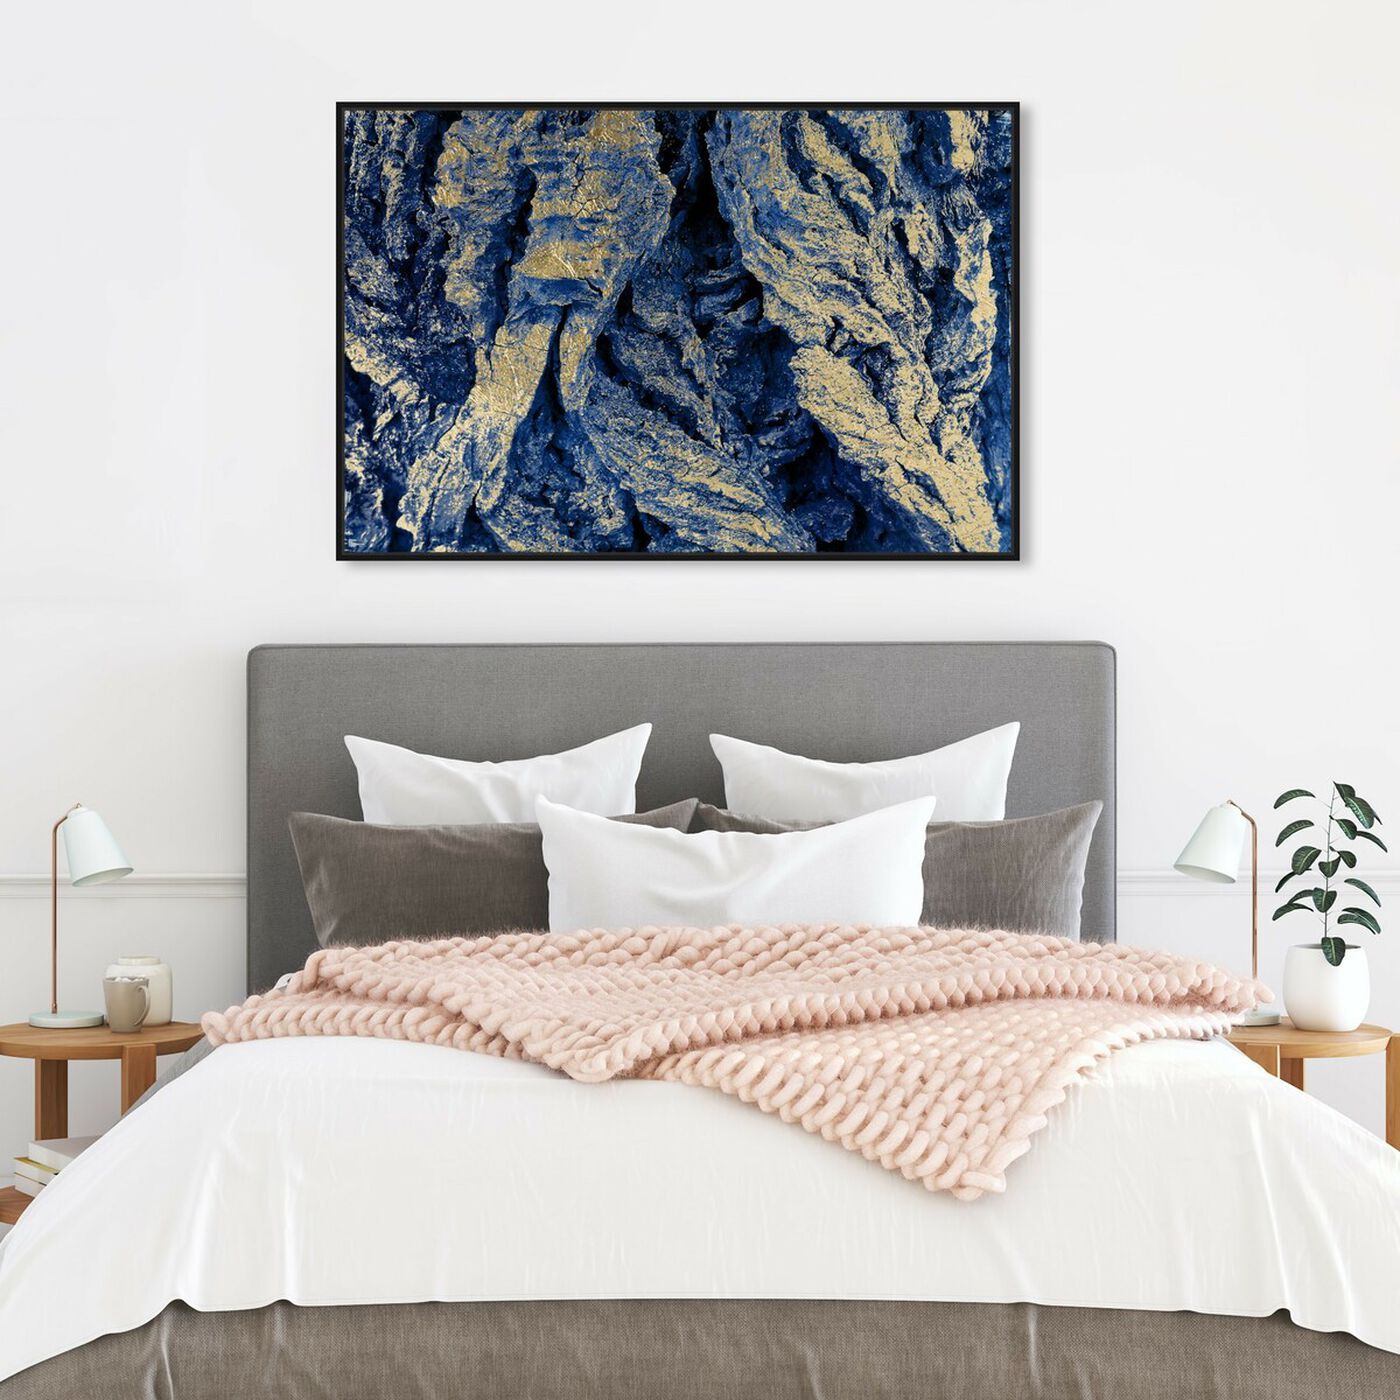 Hanging view of Organic Perfection - Signature Collection featuring abstract and paint art.